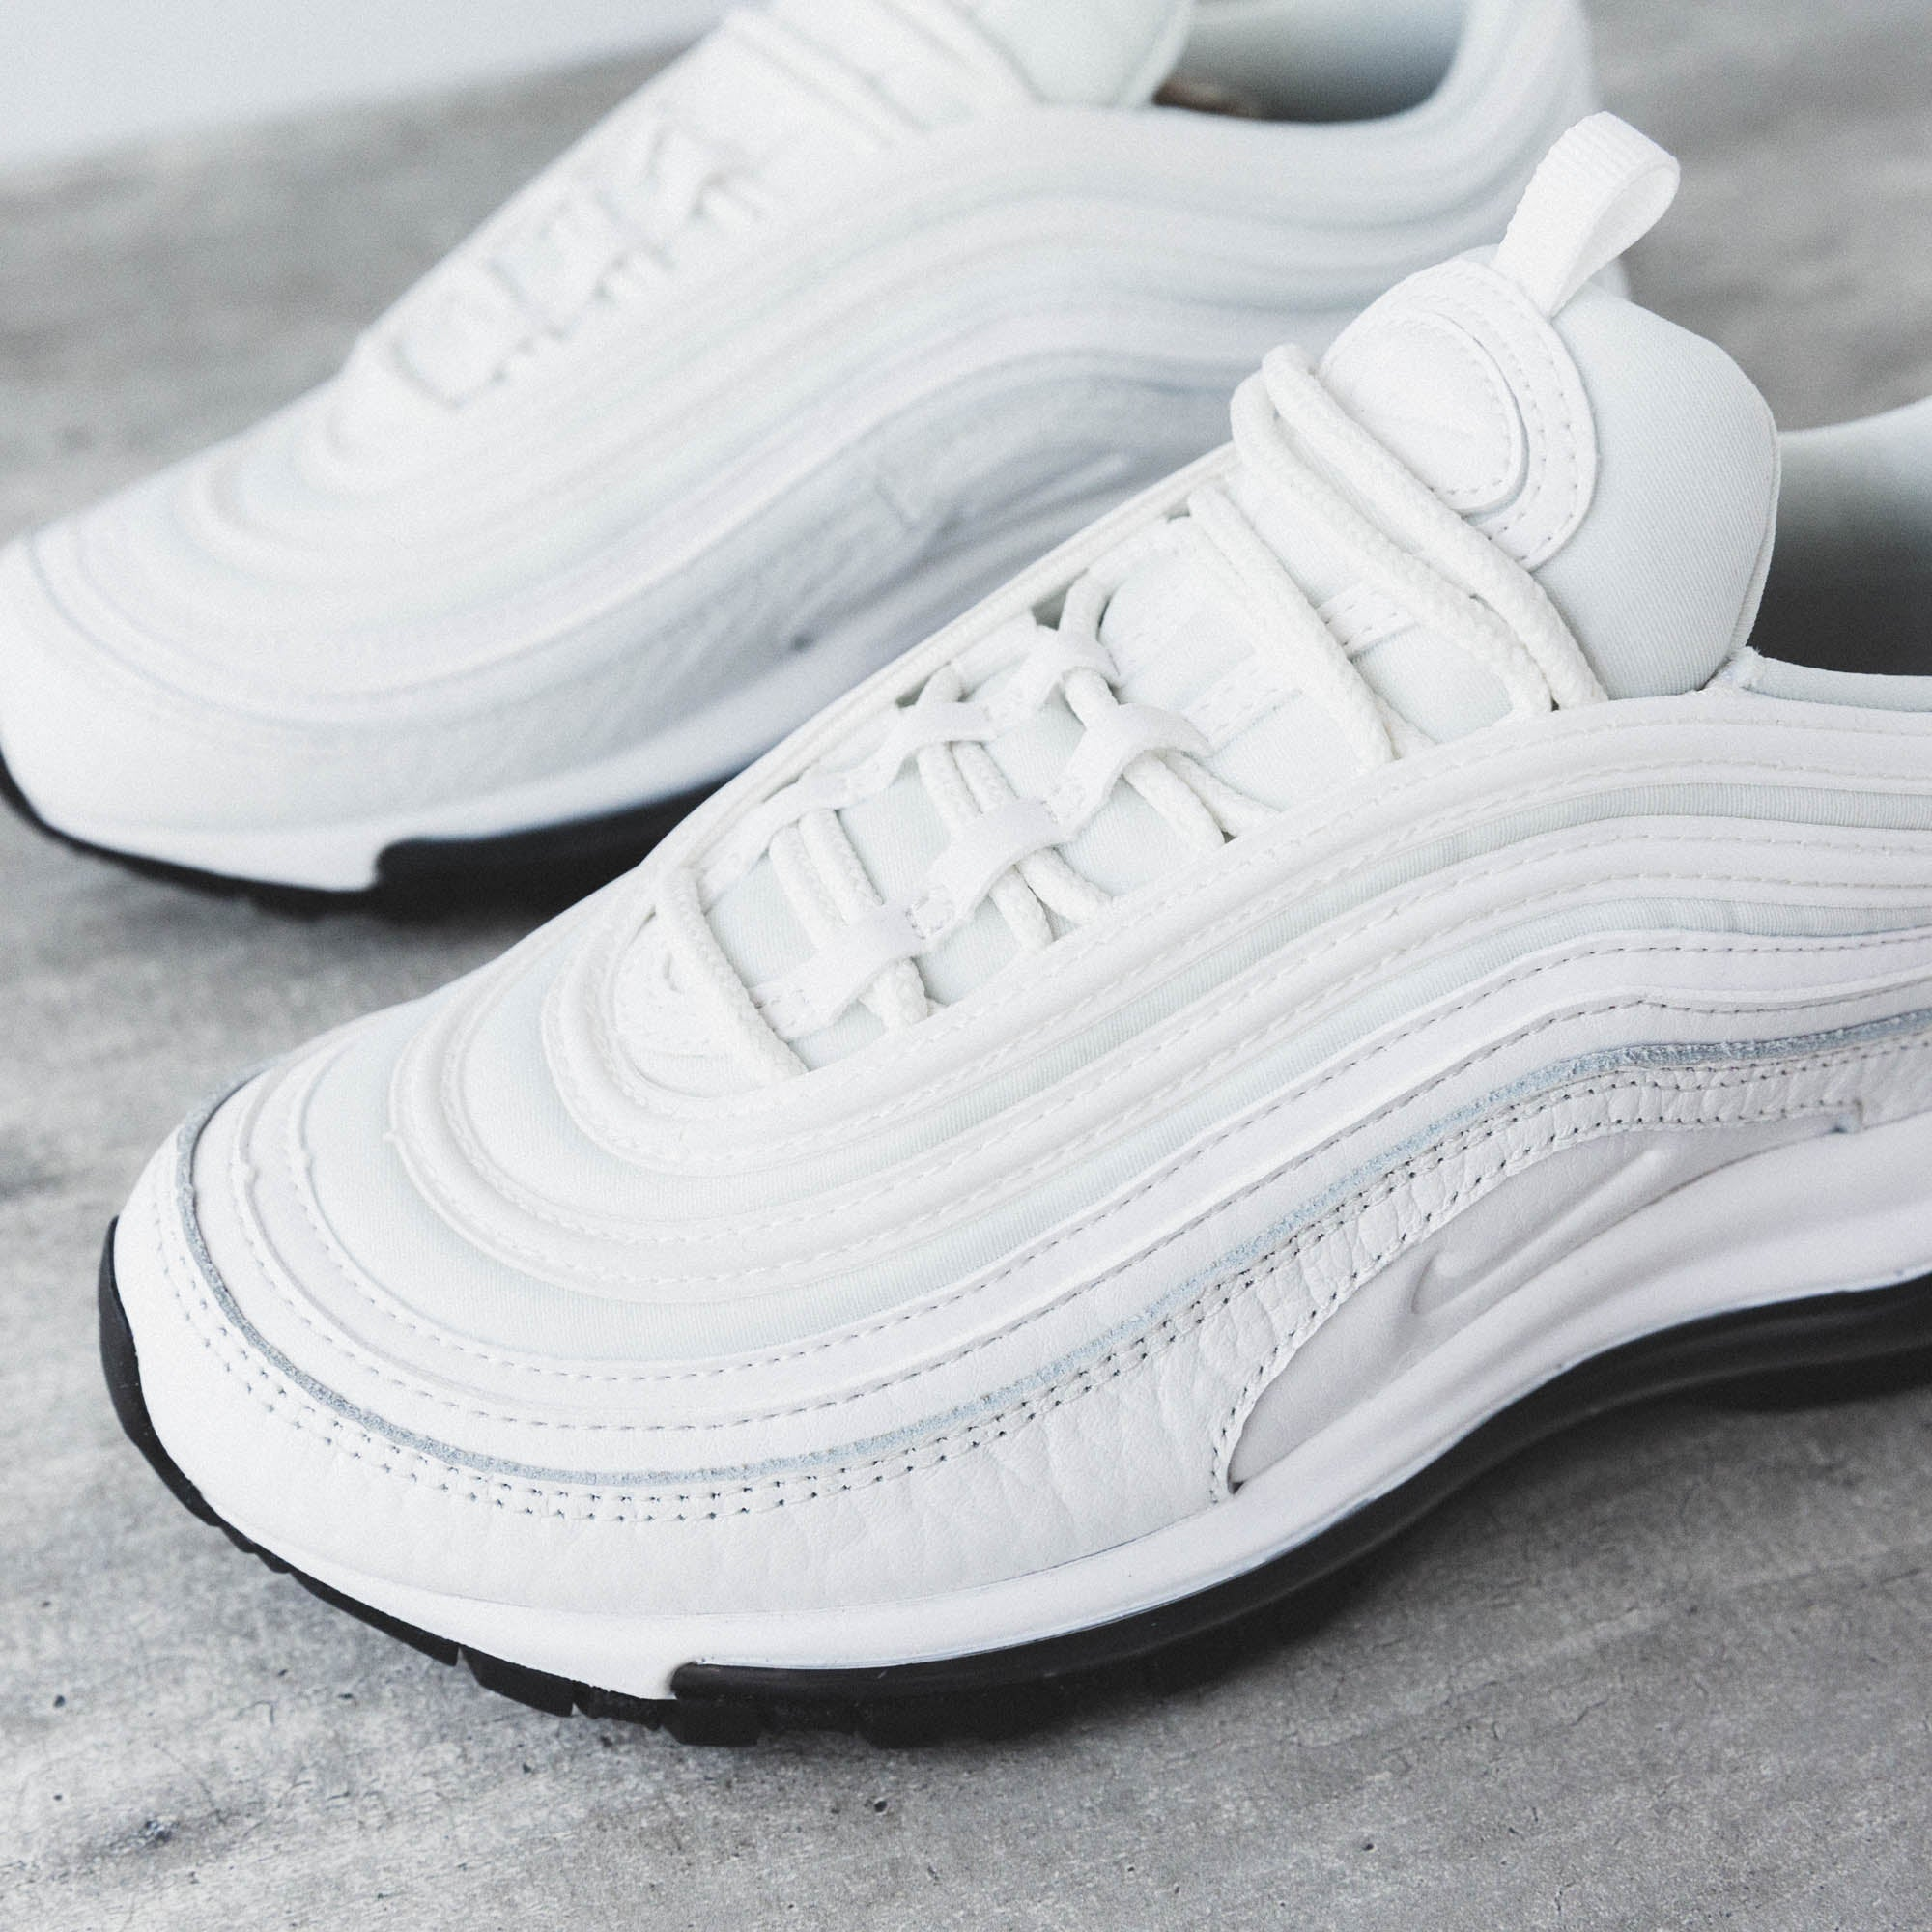 0fa7a7eeeef1d The shoe features an all-white upper made of leather and mesh, with 3M  reflective piping. Visit us in the Cove and cop a pair before they're gone!